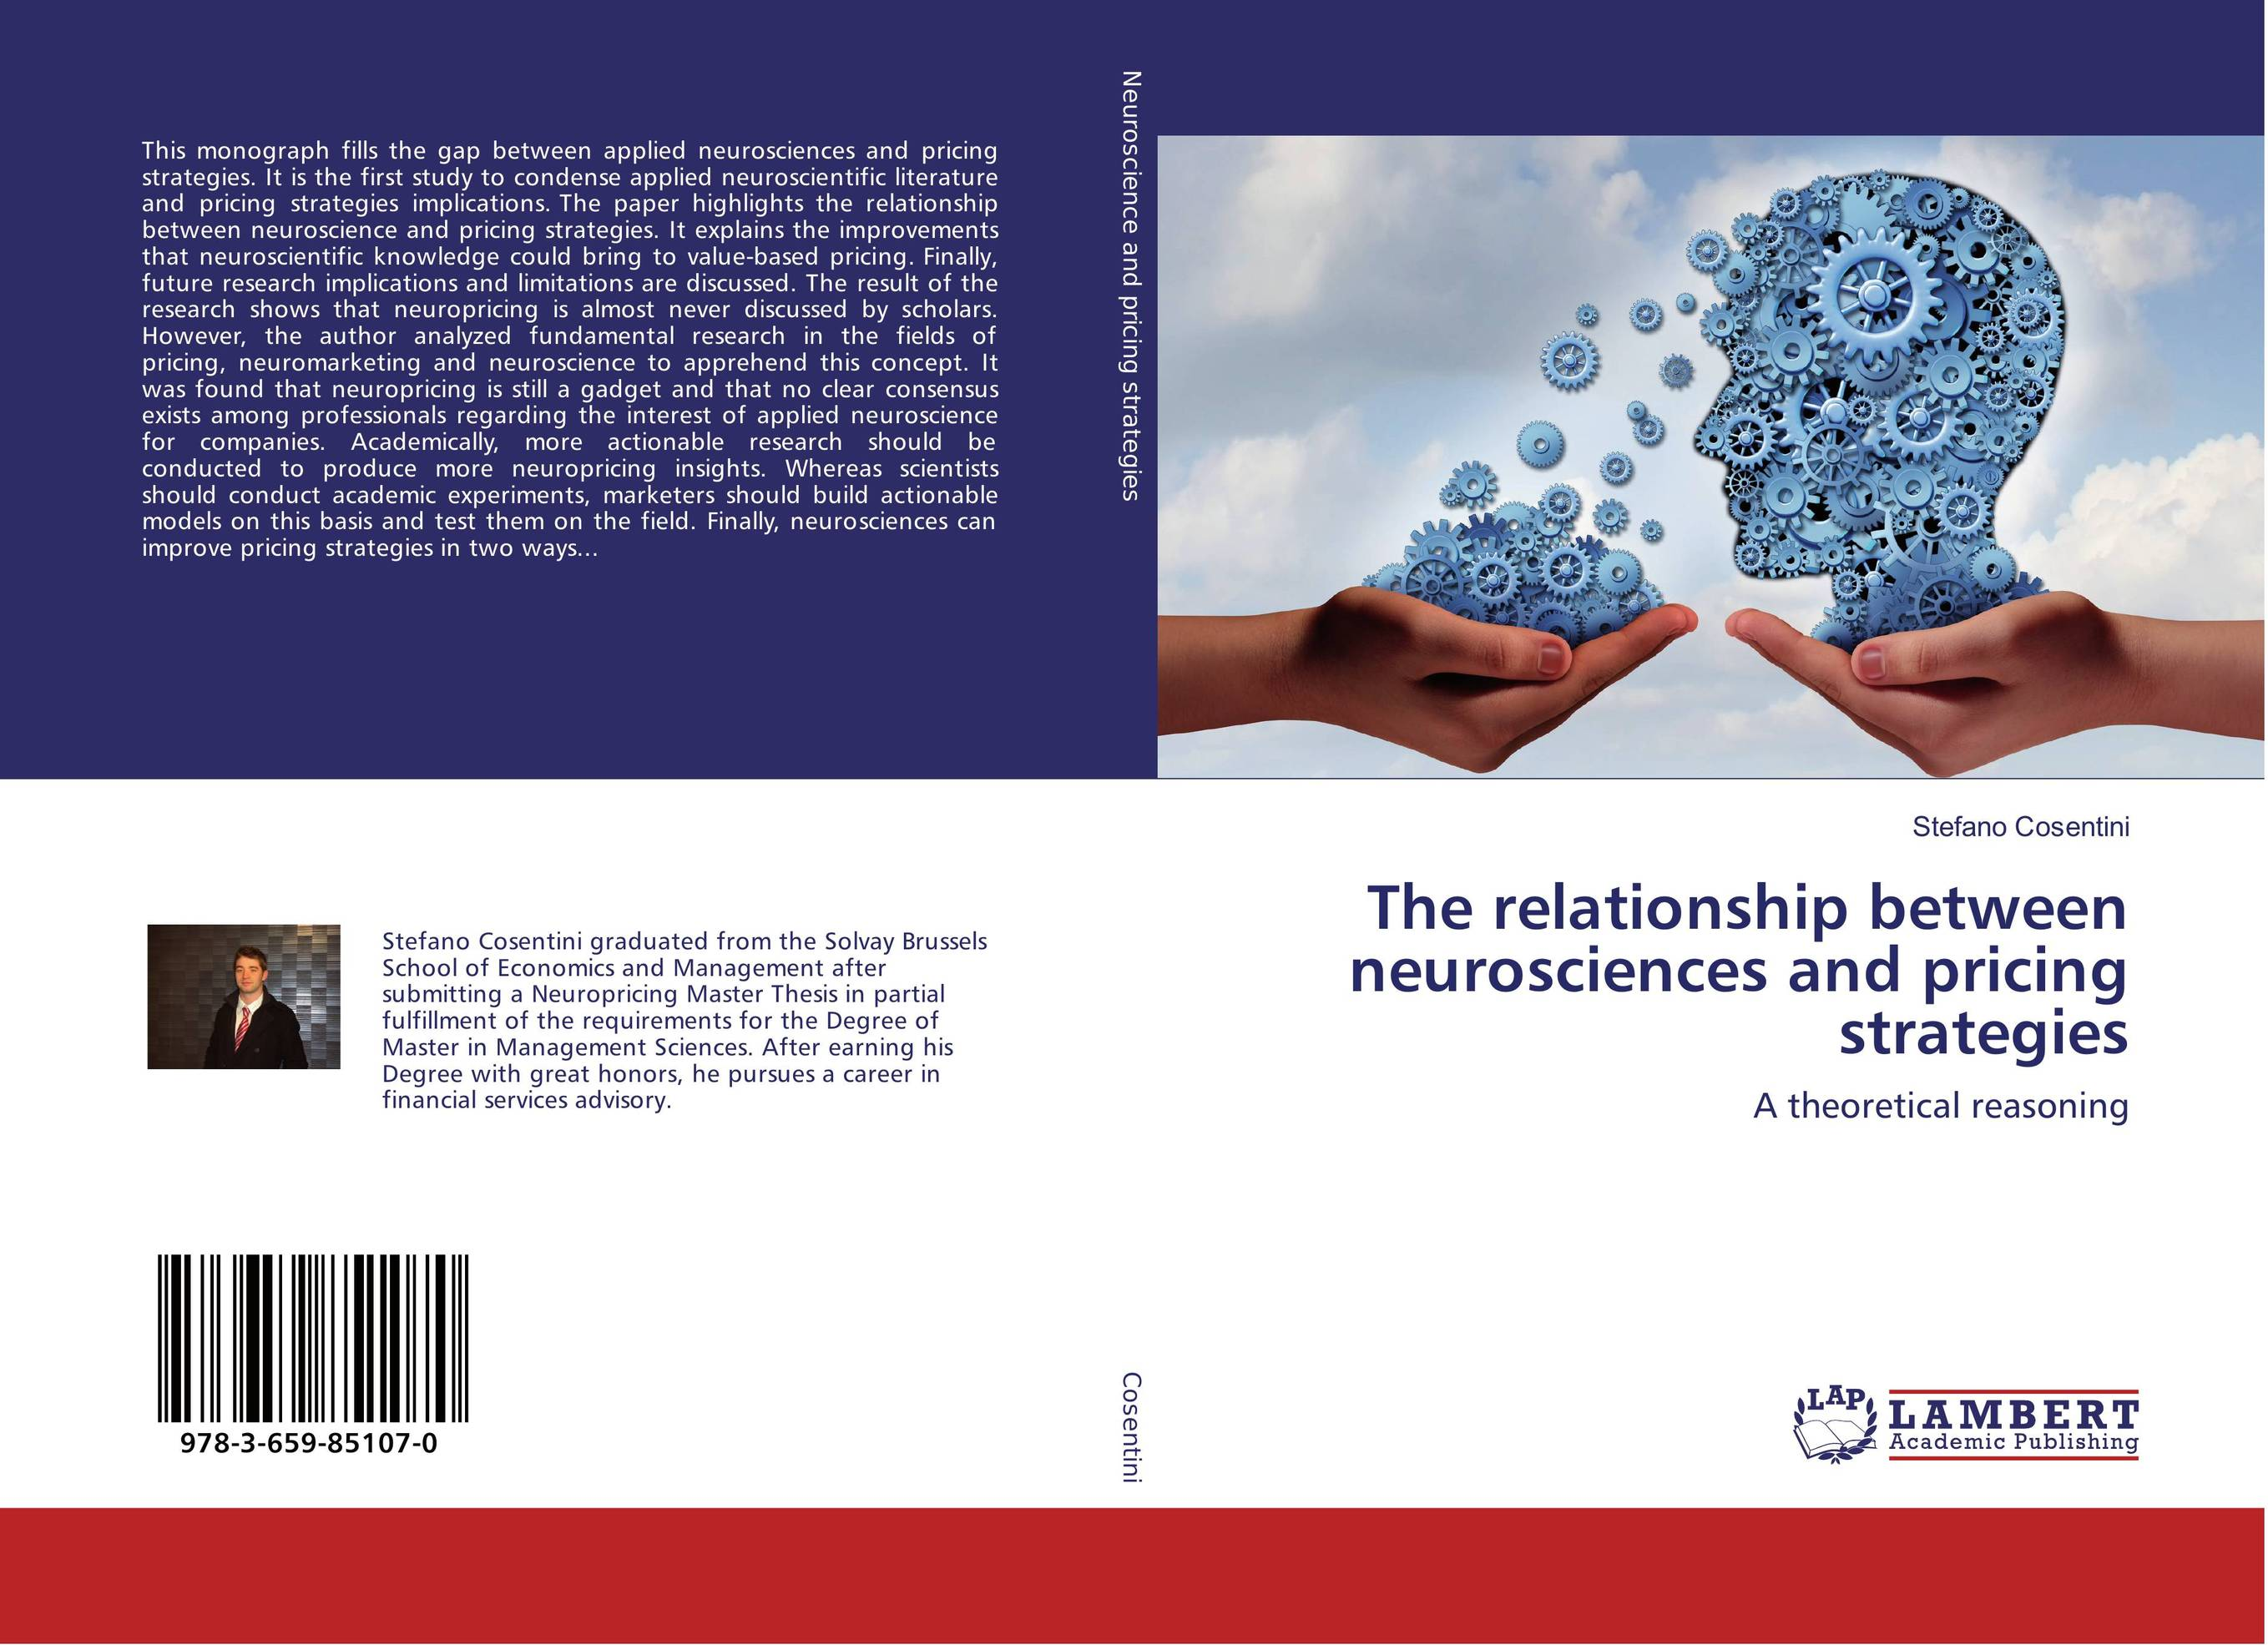 The relationship between neurosciences and pricing strategies